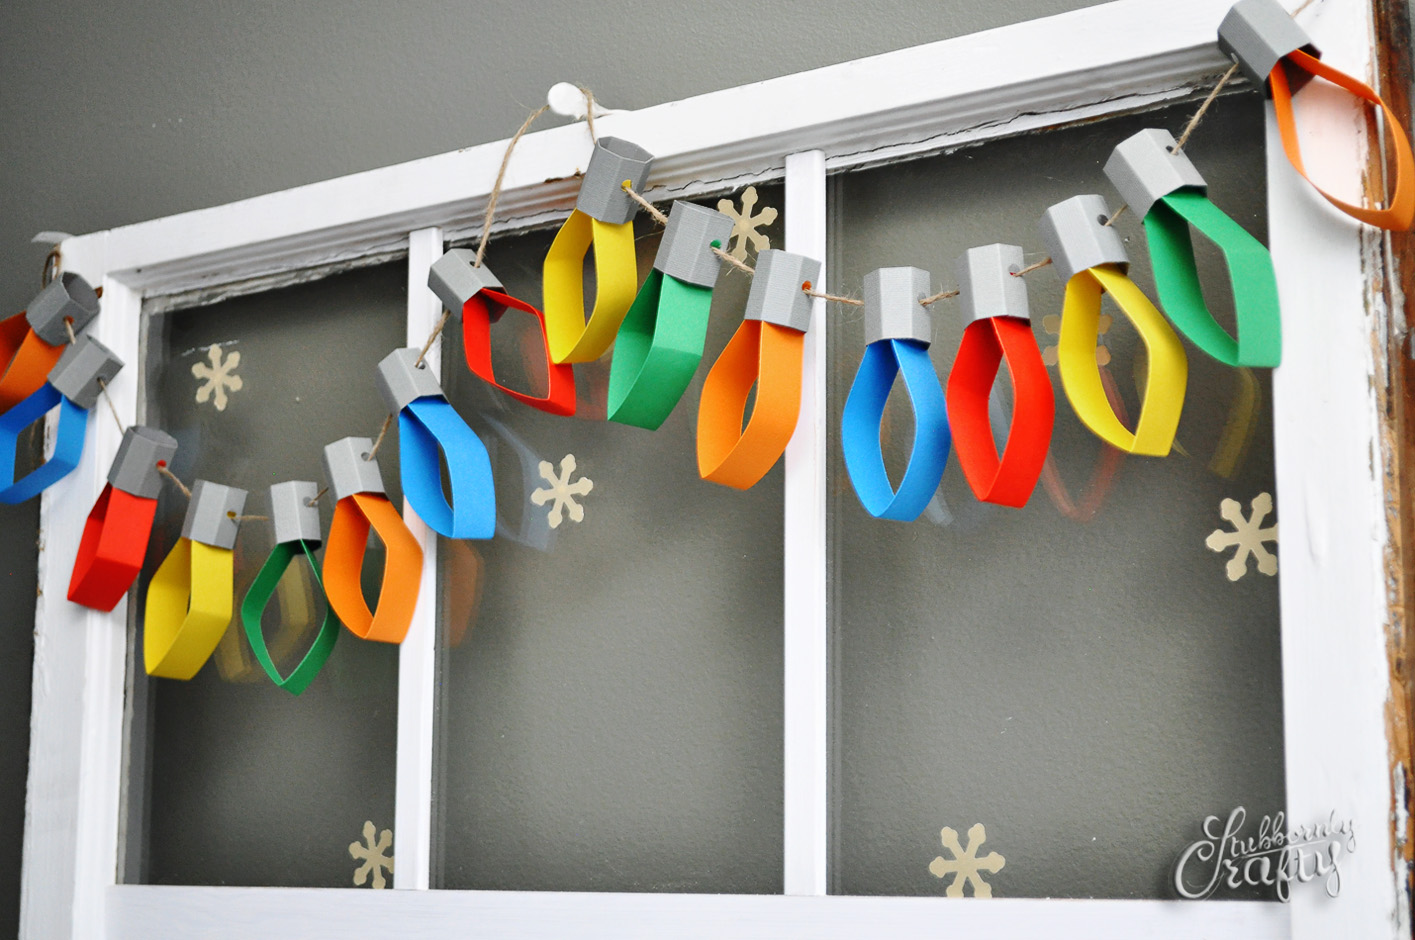 paper lights diy project details stubbornlycraftycom christmas garland decoration - Diy Christmas Decorations Ideas